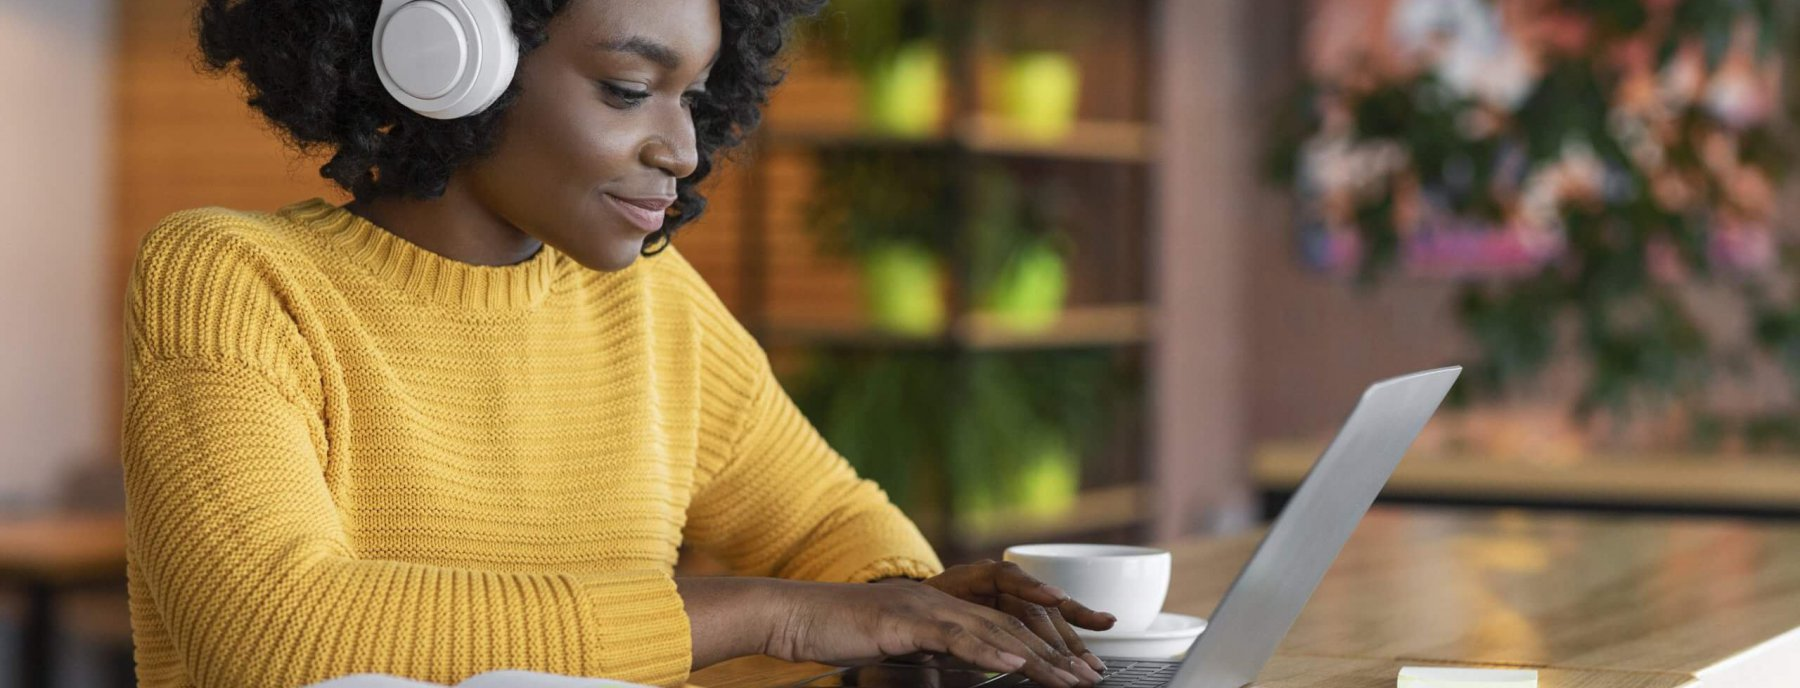 Best Practices for Online Teaching: How to Structure an Online Curriculum and Keep Students Engaged